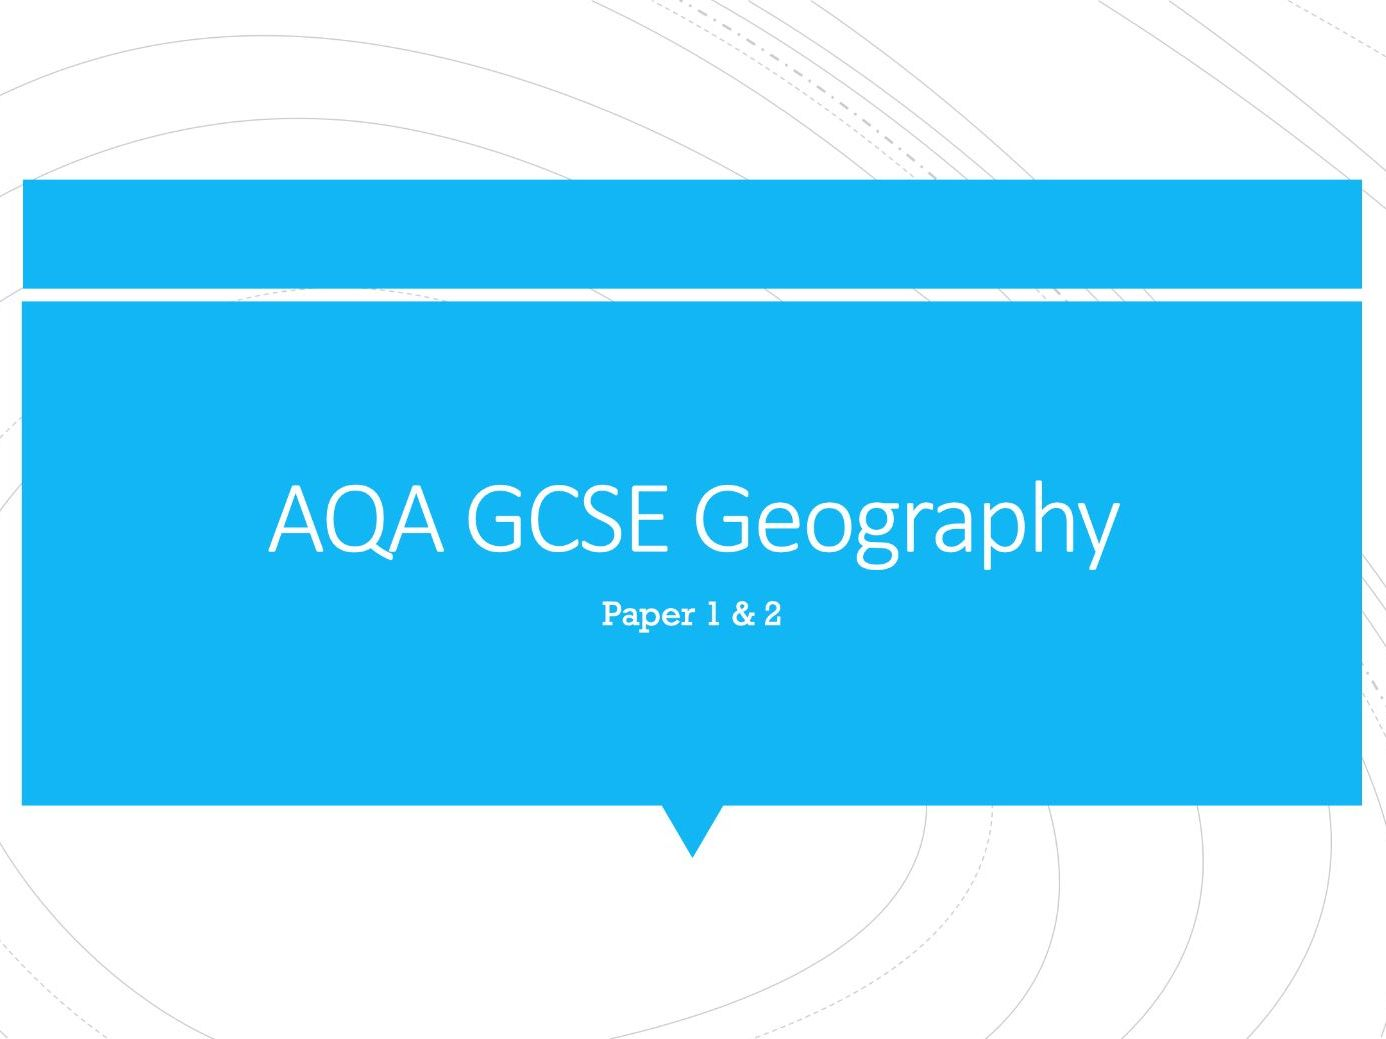 Geography AQA GCSE PowerPoints - Paper 1 & 2